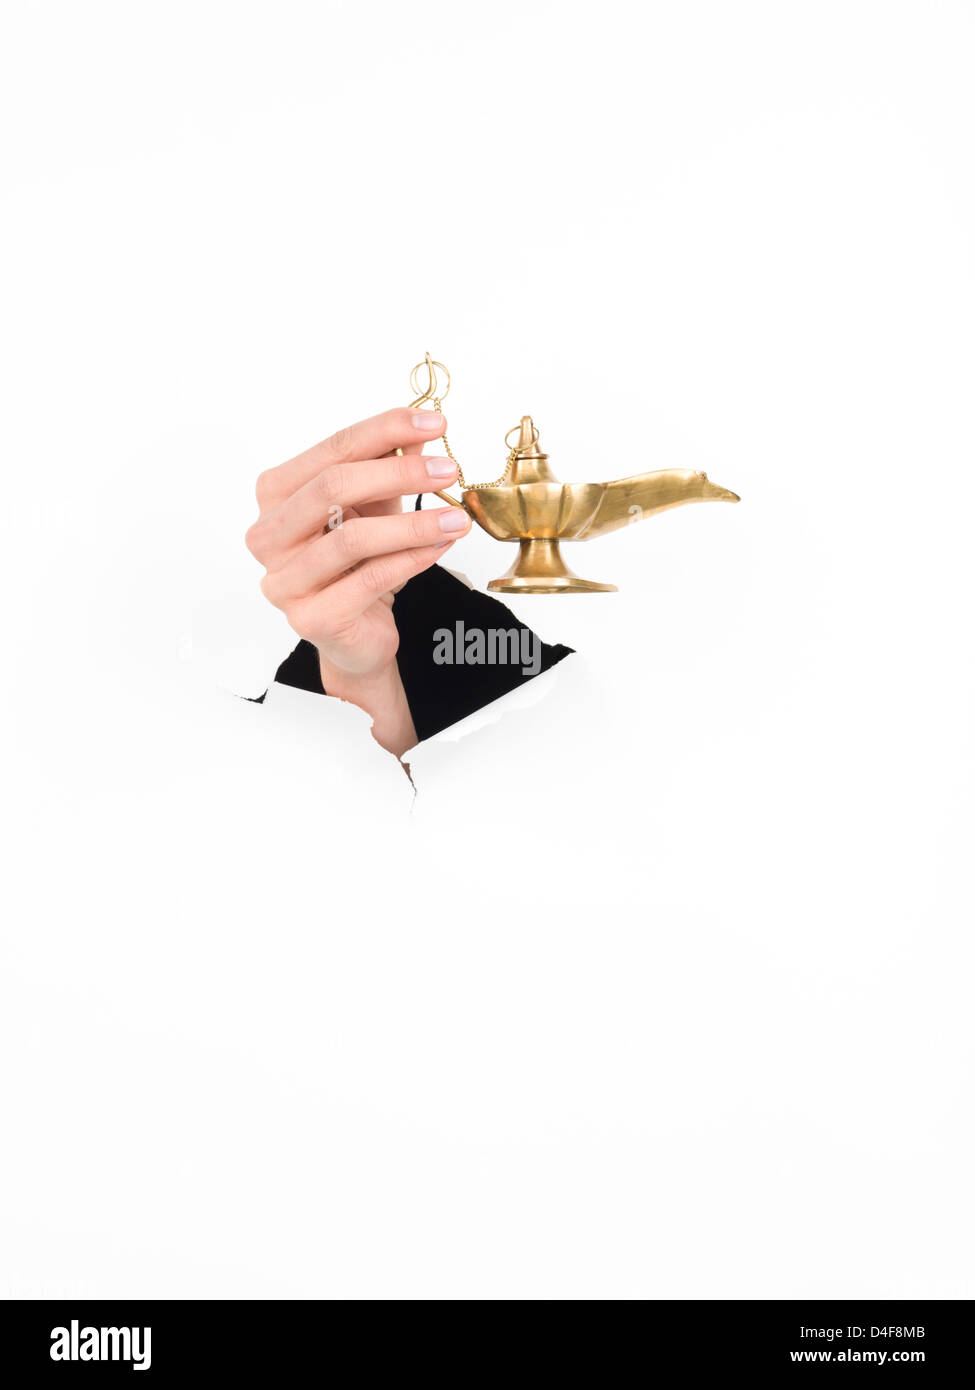 close-up of female hand holding a magic lamp through a torn white paper, isolated - Stock Image